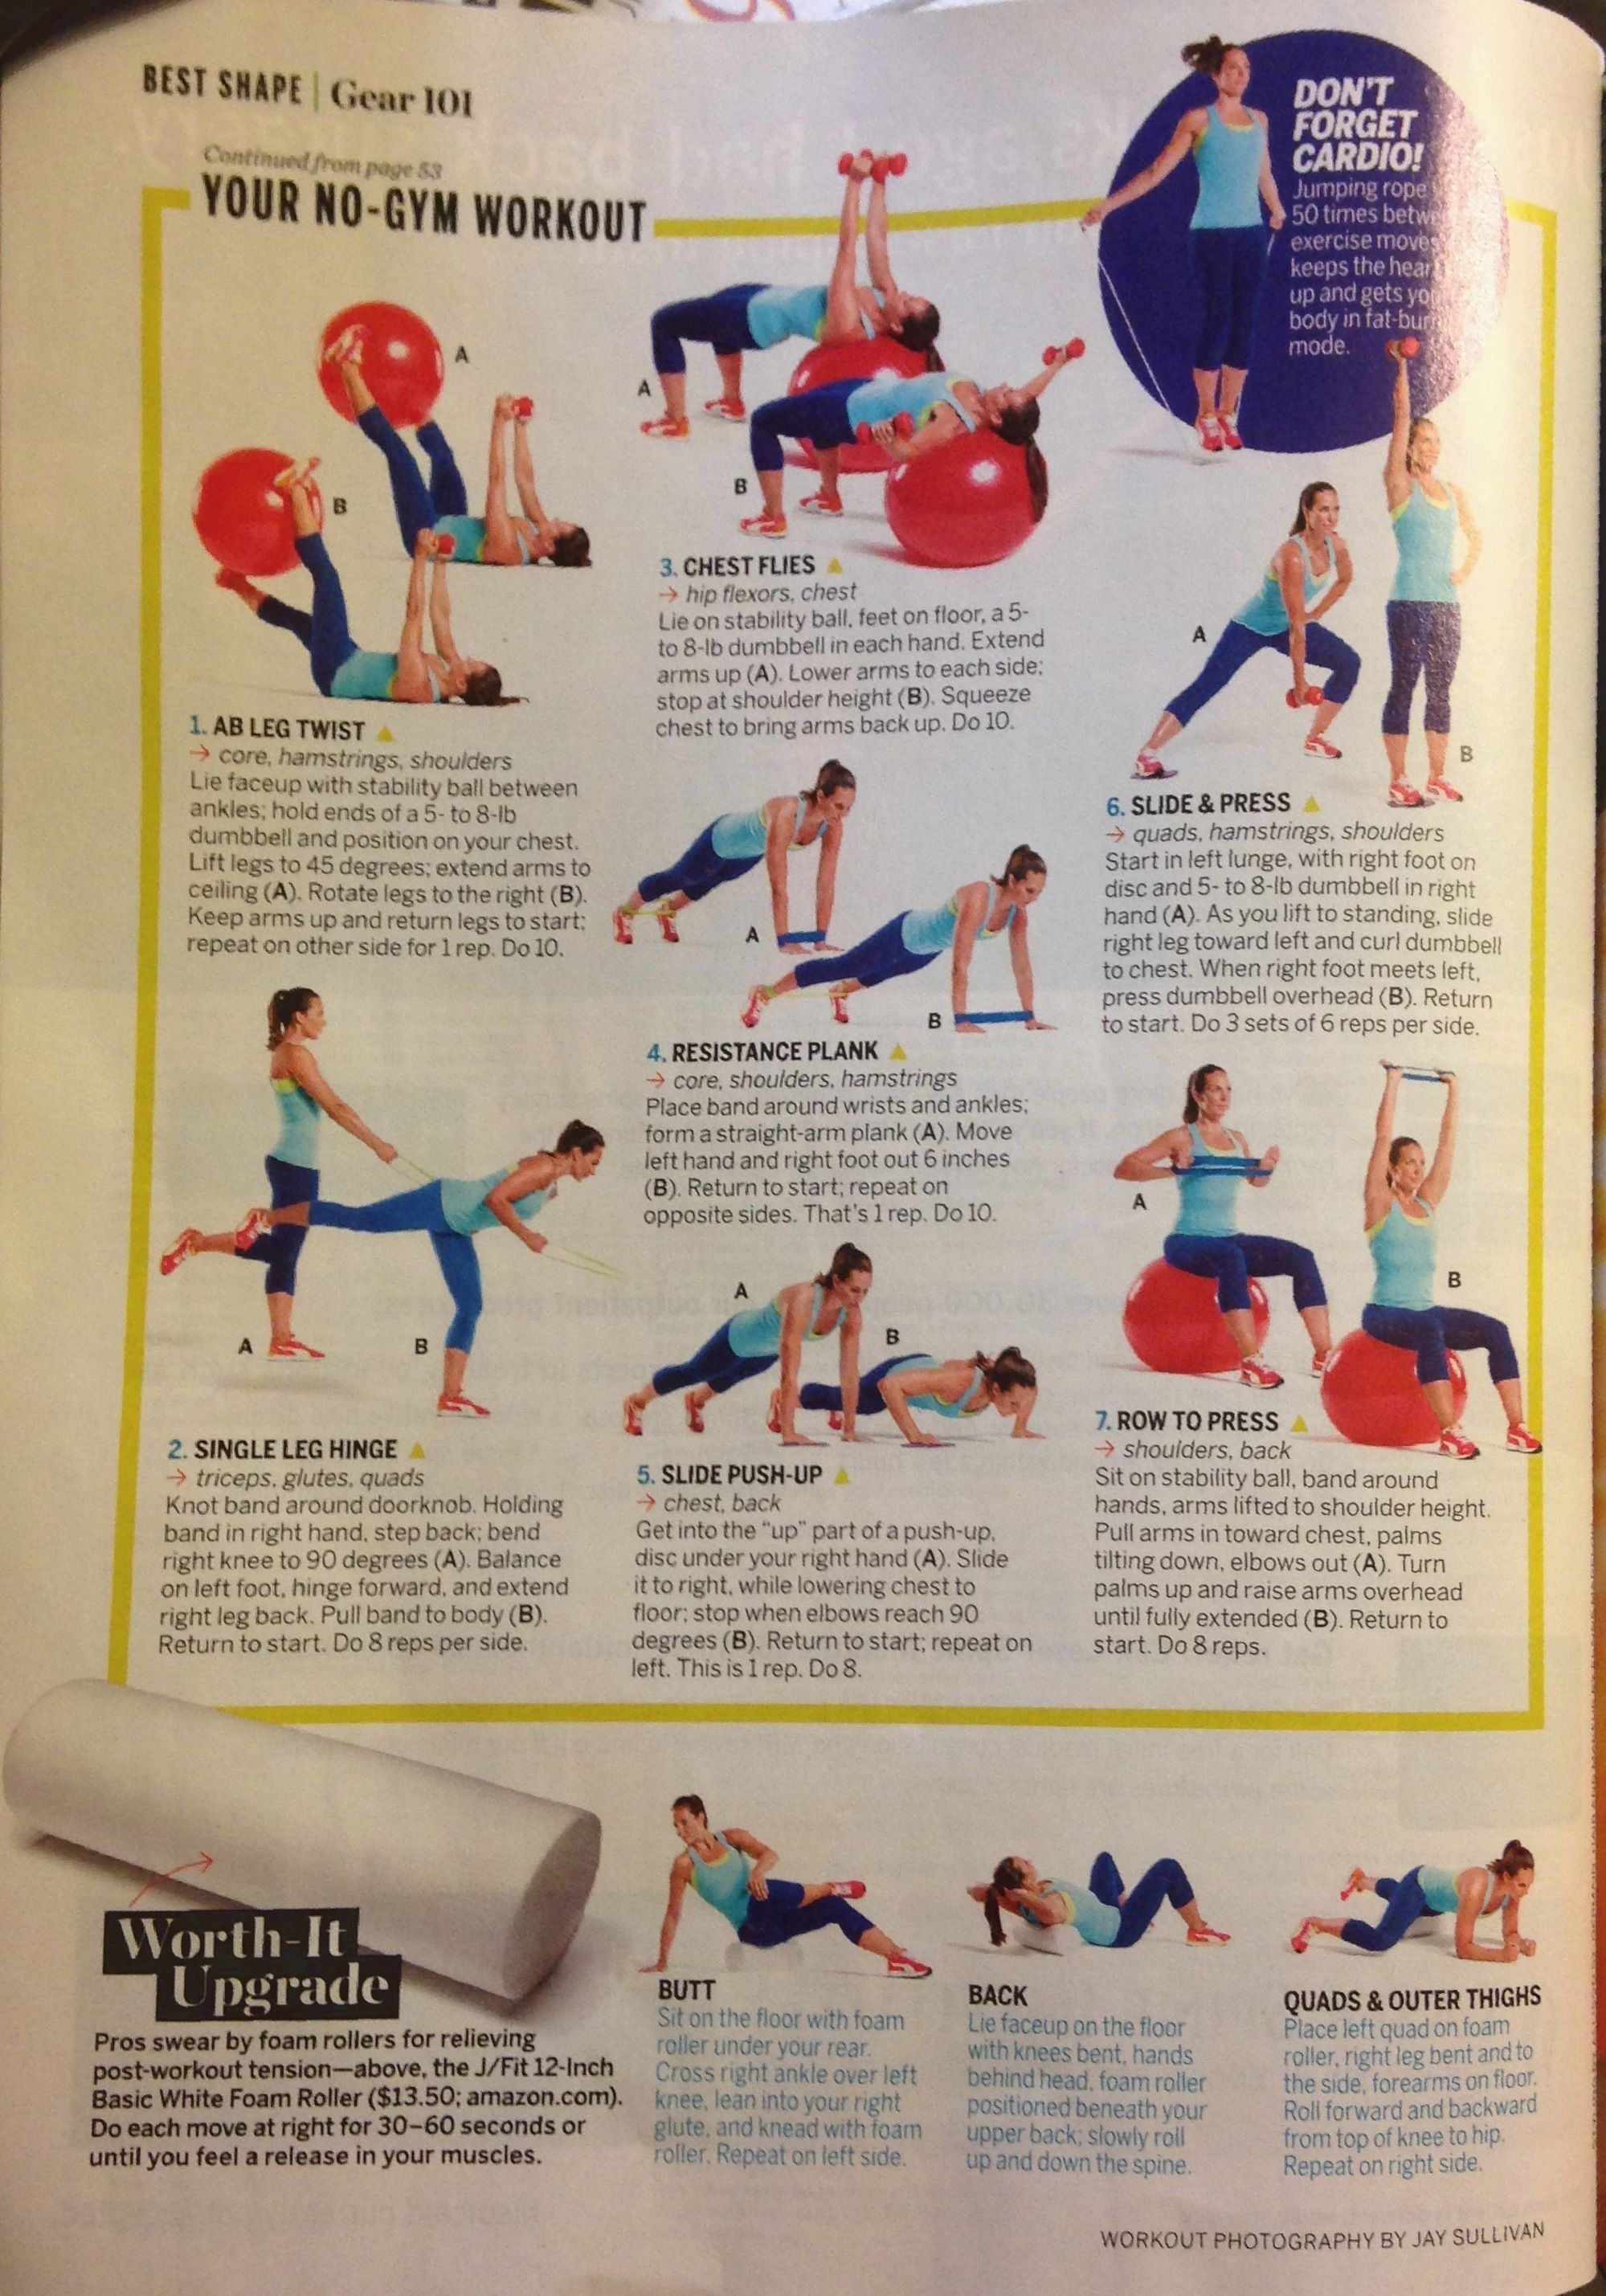 Your No Gym Workout Gym Workouts Workout Dumbbell Lifts